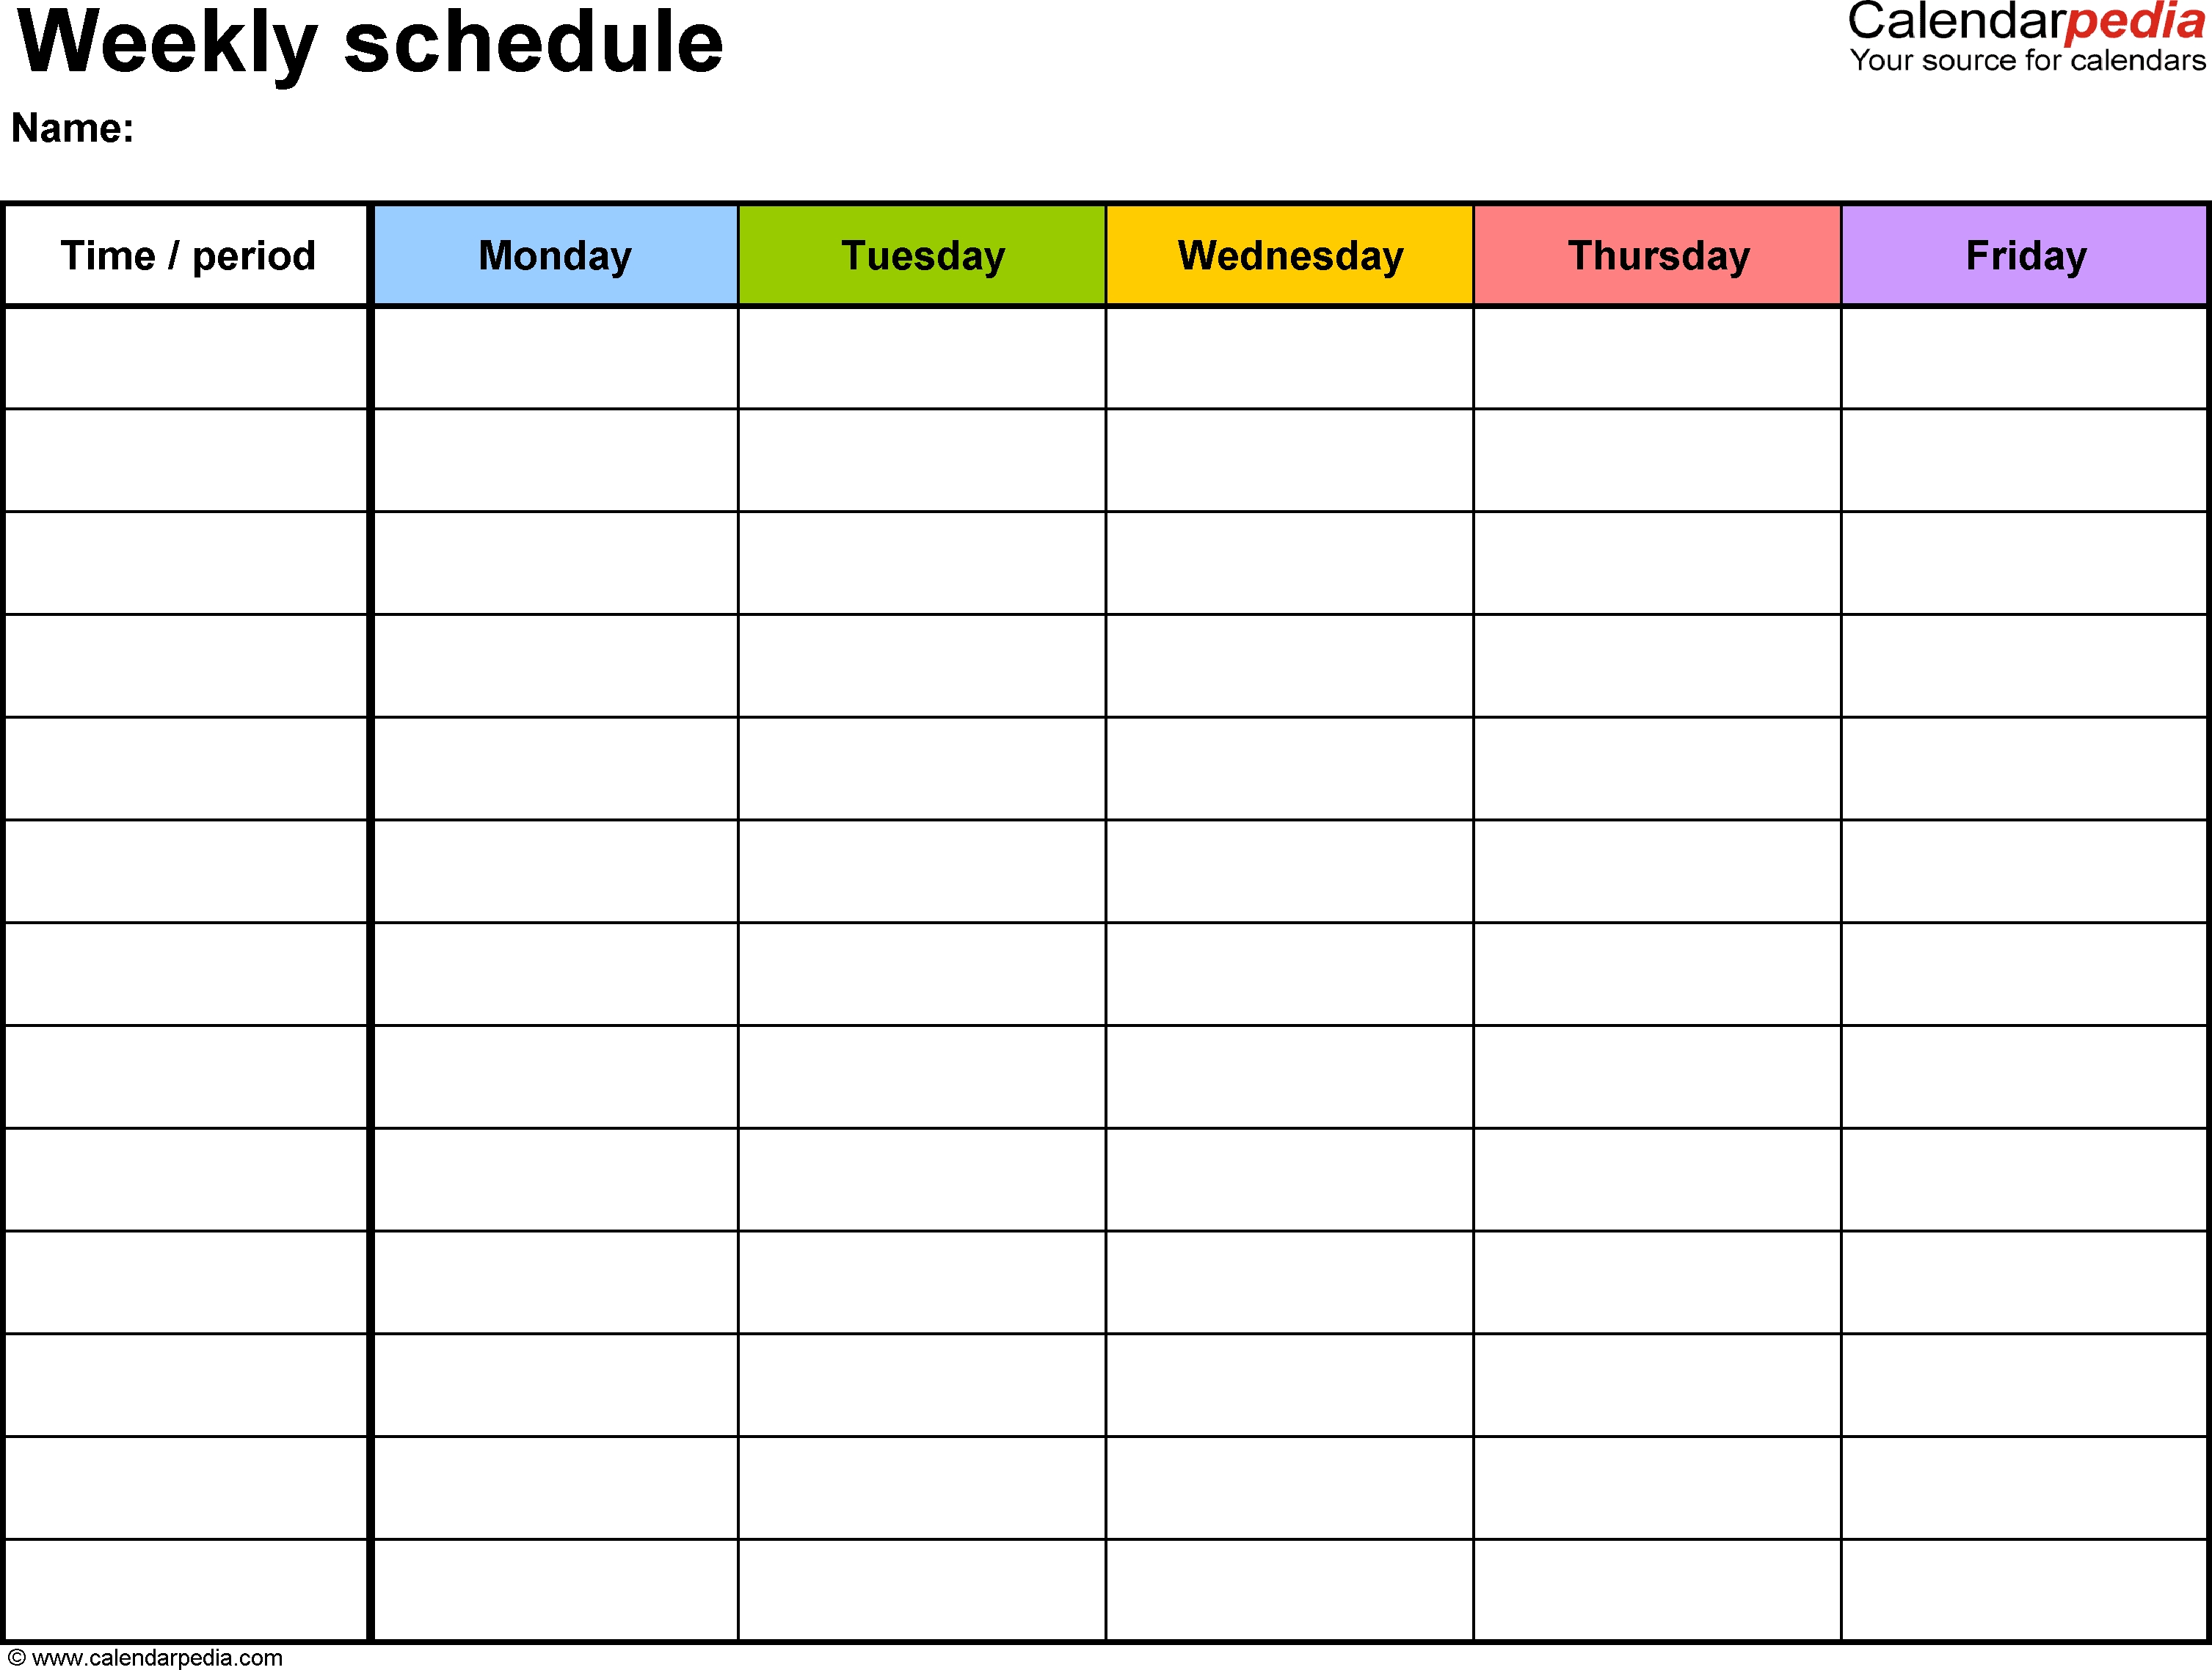 Free Weekly Schedule Templates For Excel - 18 Templates with regard to Online Daily Time Slot Planner